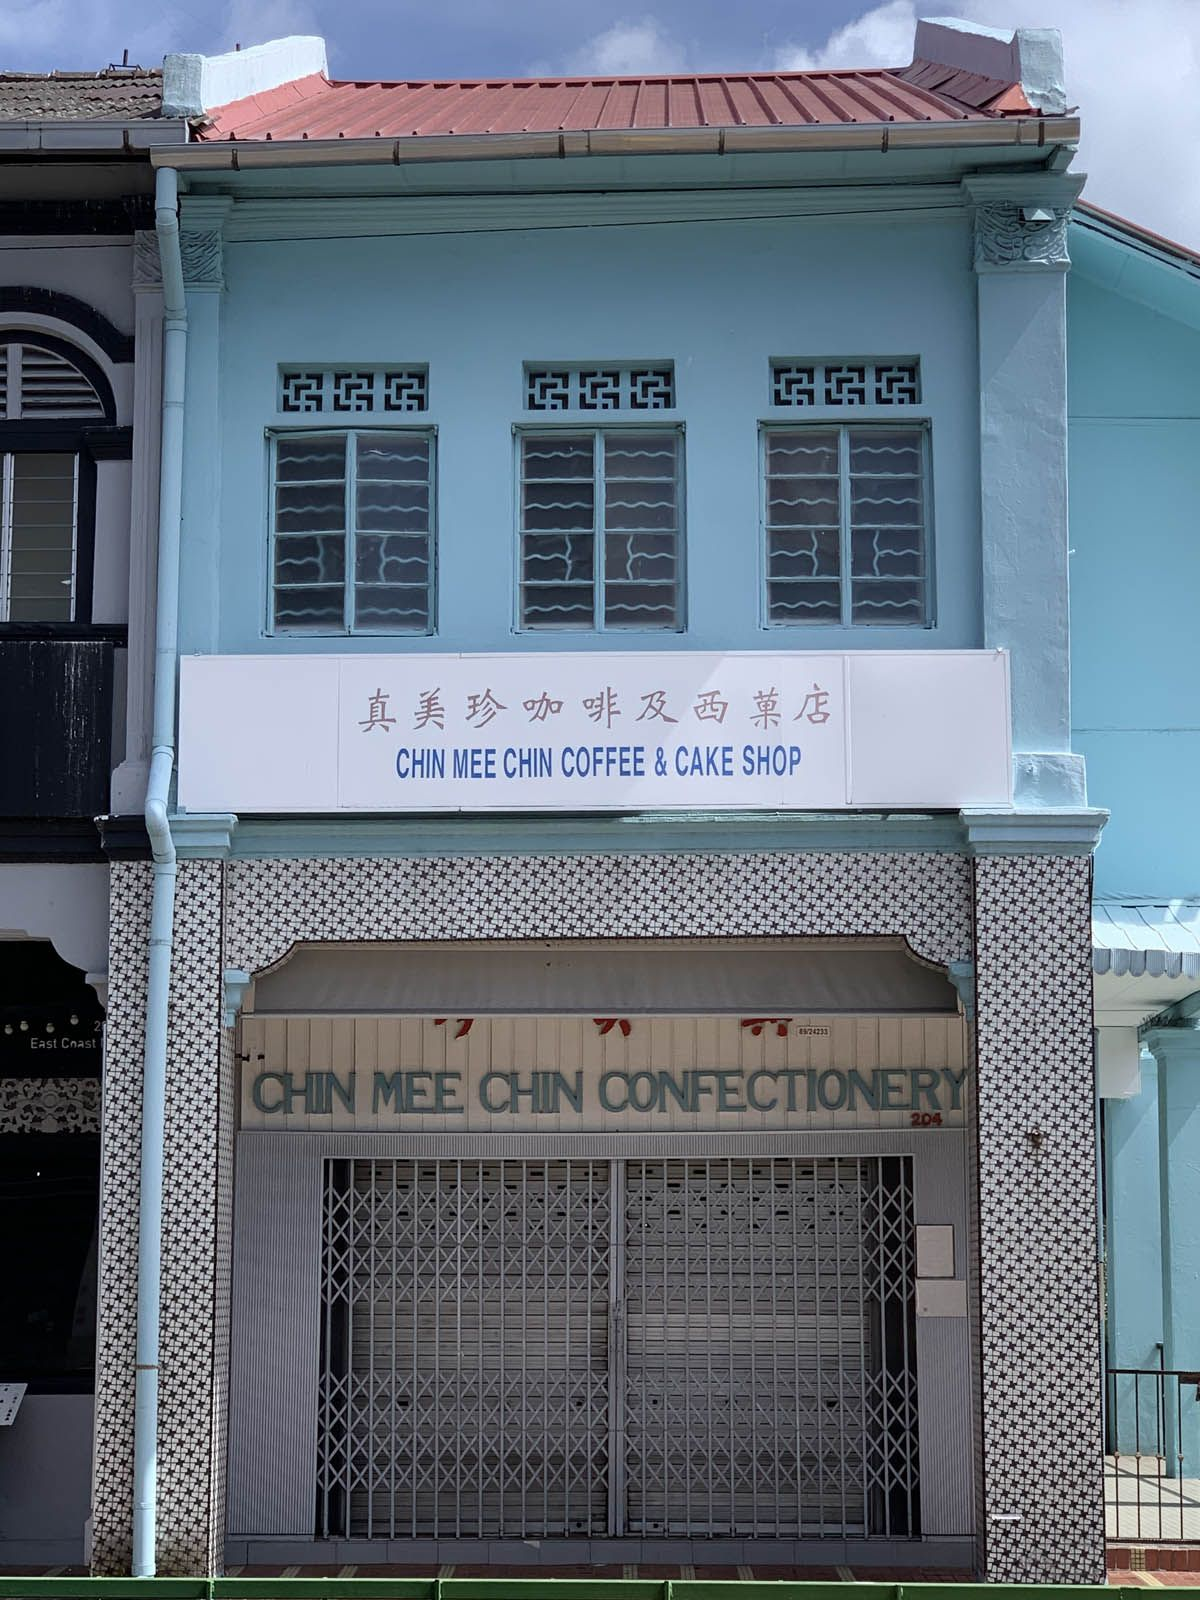 Chin Mee Chin Confectionery to Re-Open in Late August—Here's What to Expect